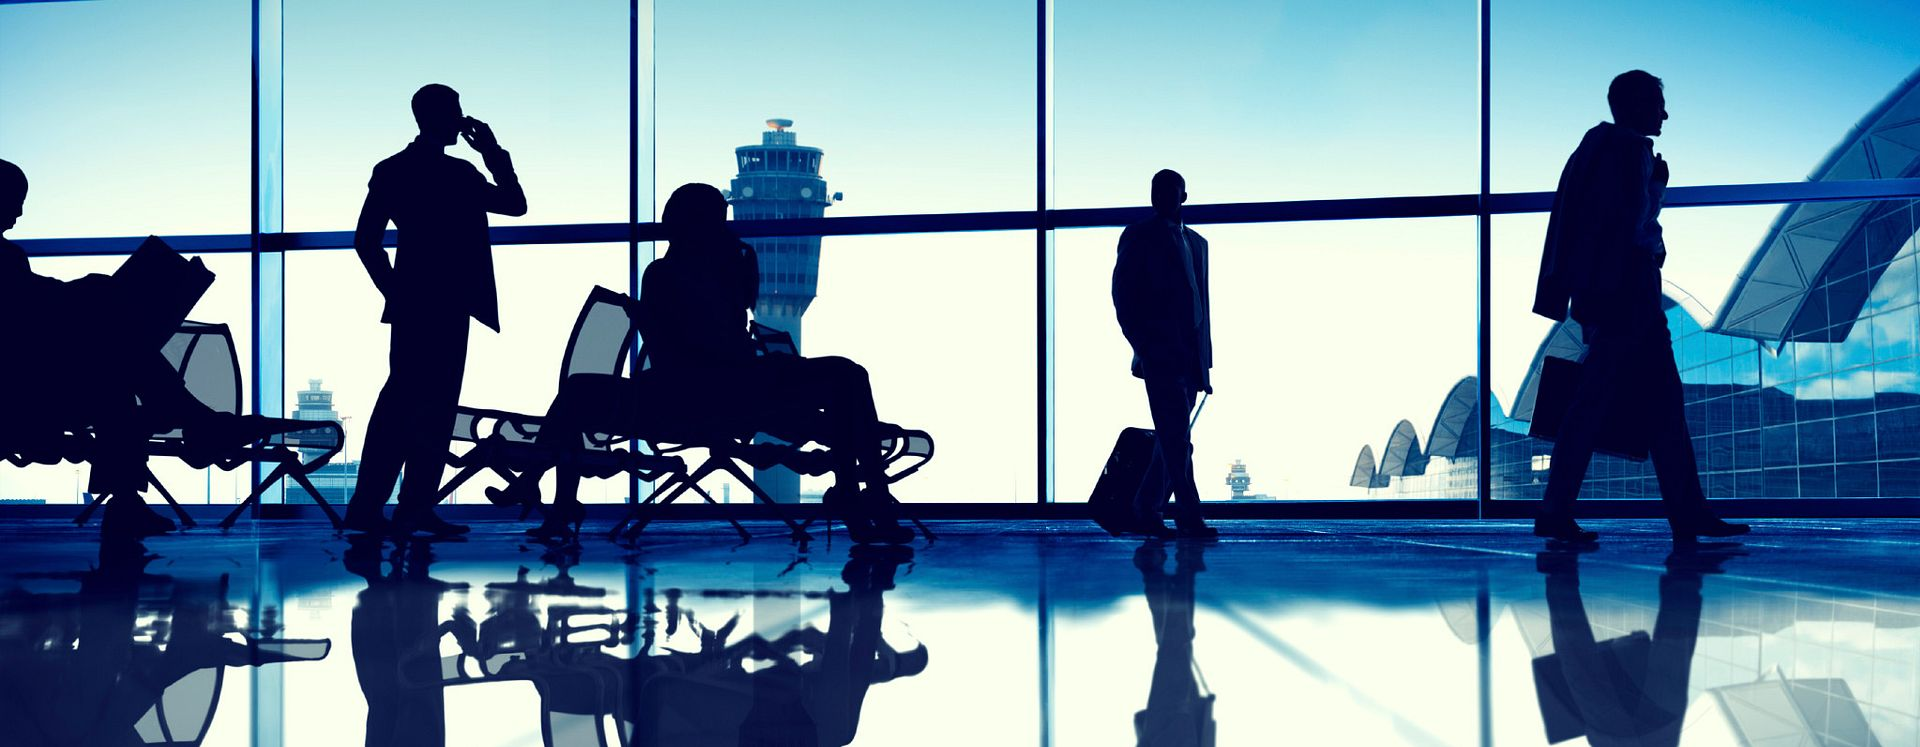 Silhouettes of travellers in an airport